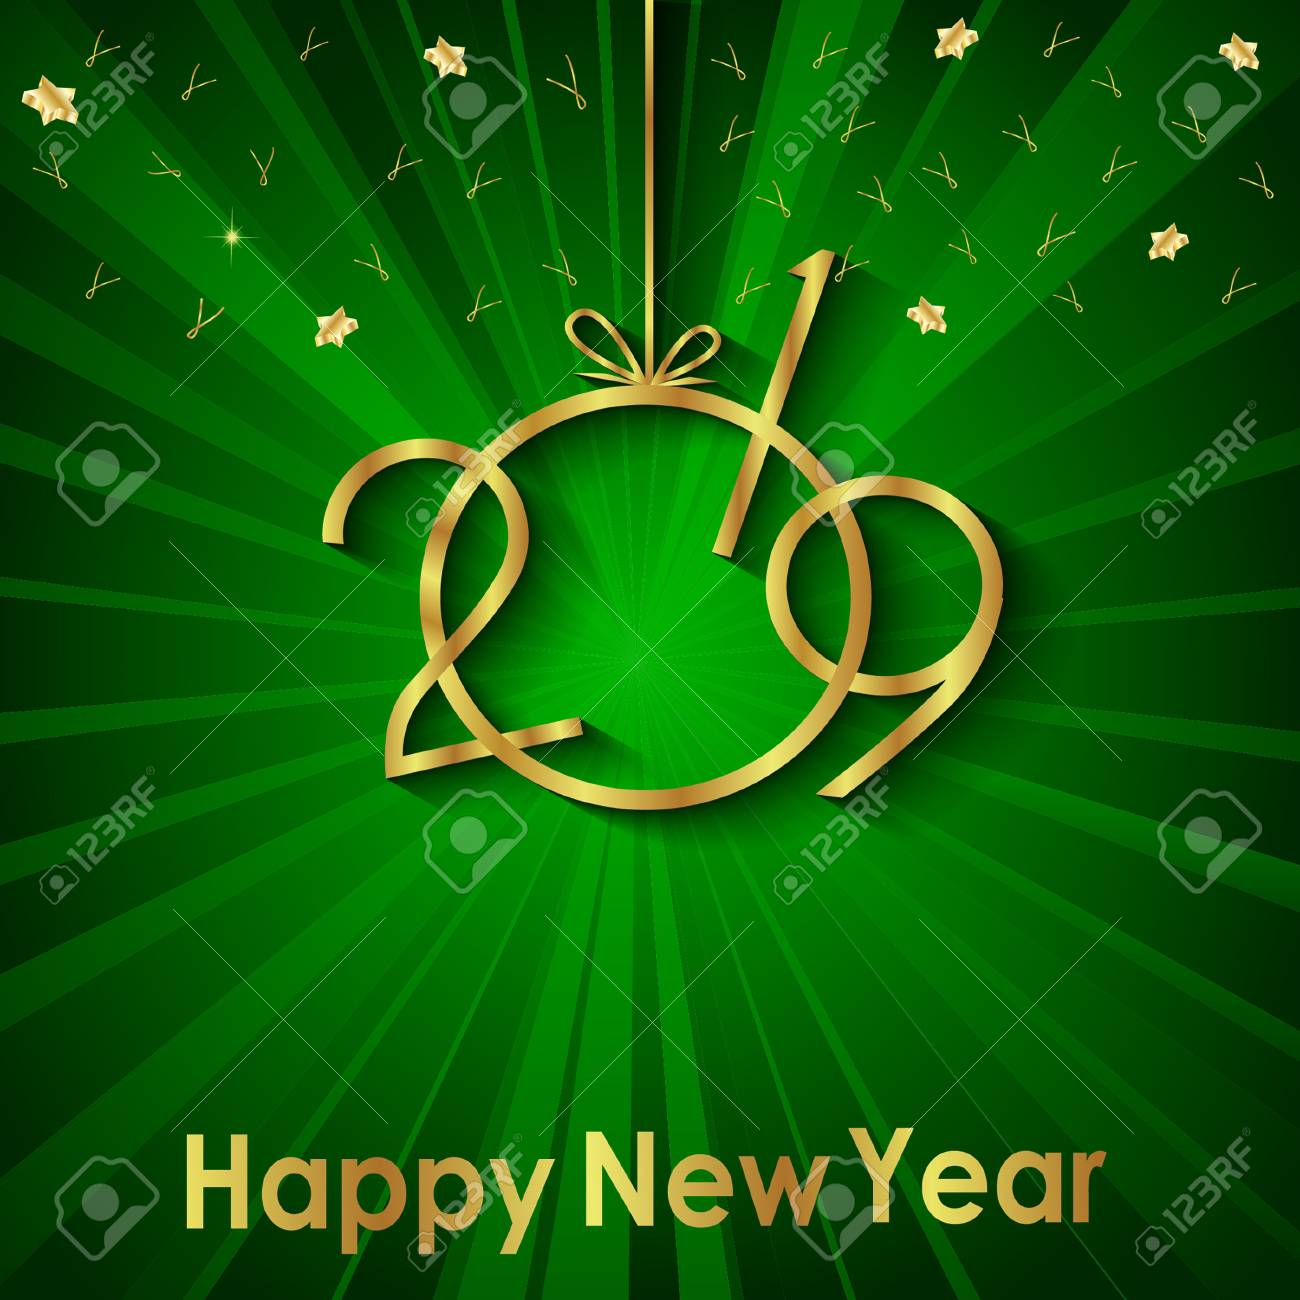 2019 Happy New Year background for your invitations, festive posters, greetings cards. - 108860664